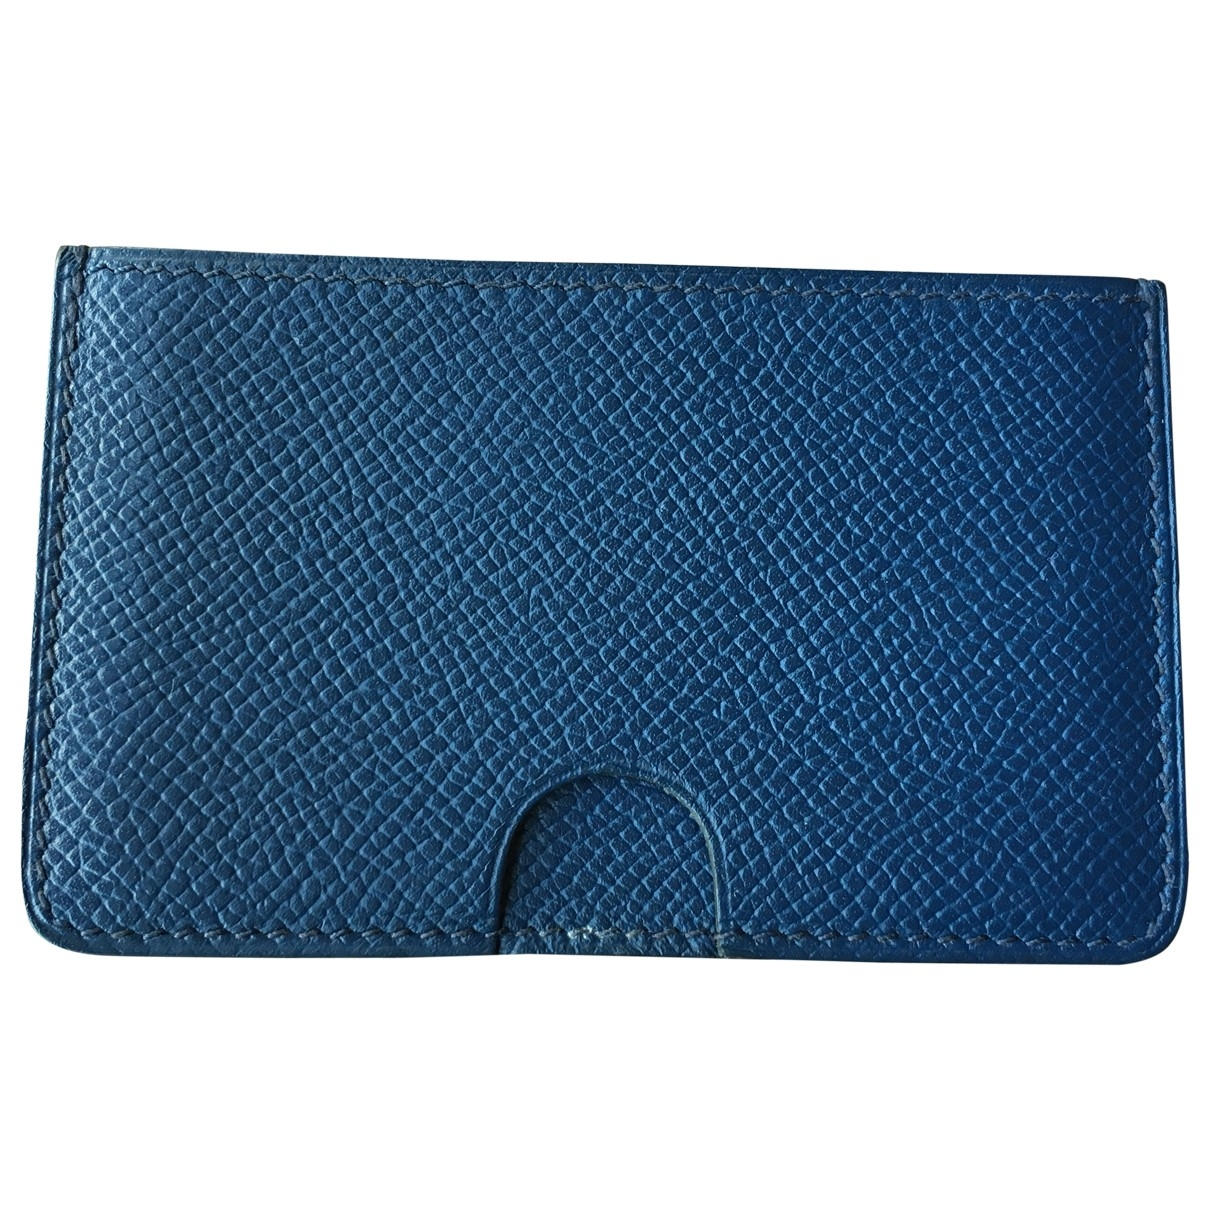 Hermès Calvi Blue Leather Purses, wallet & cases for Women \N